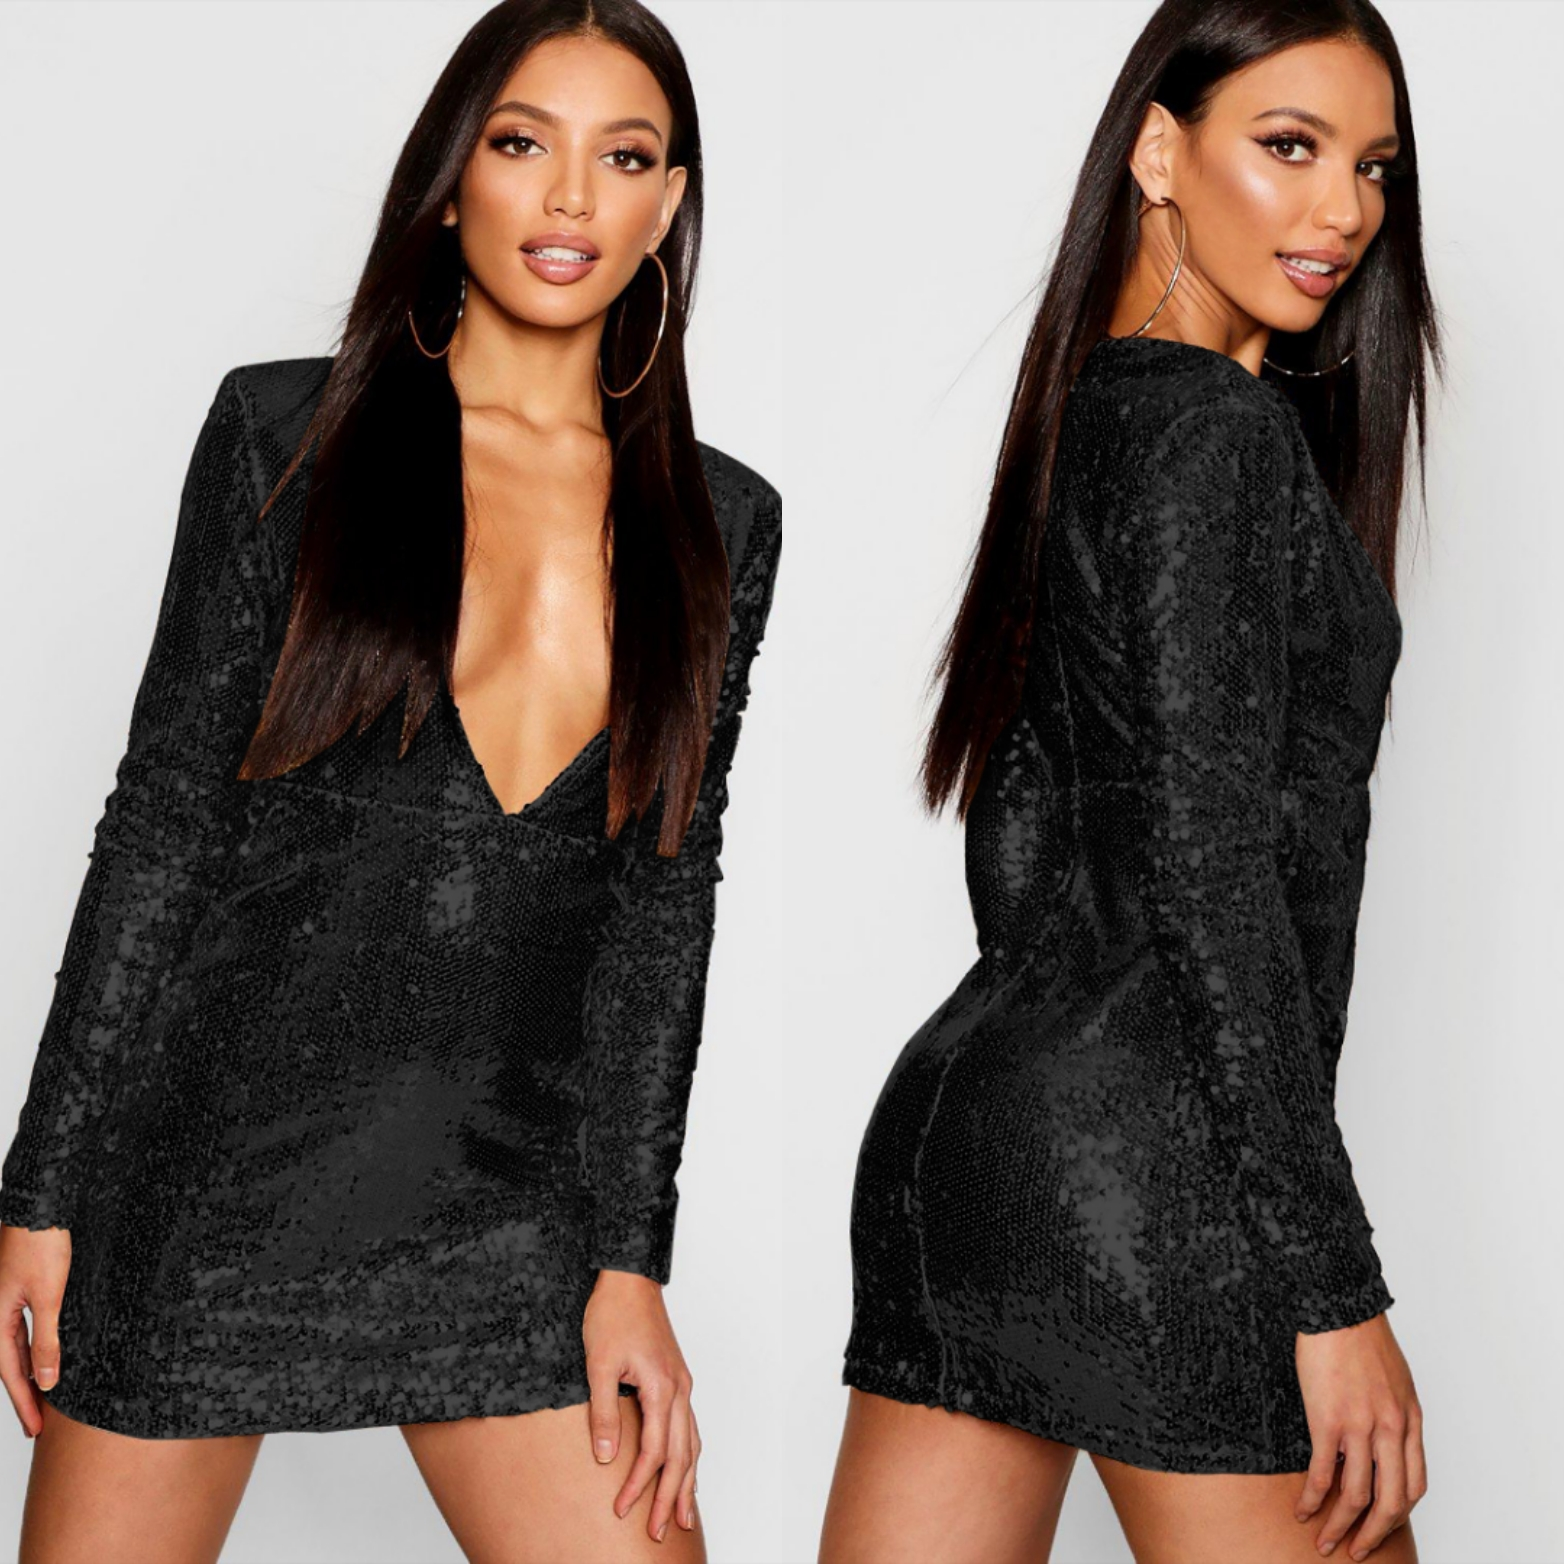 d2bac6a7 UK Women's Sequin Long Sleeve Plunge V Neck Bodycon Mini Cocktail Party  Dress